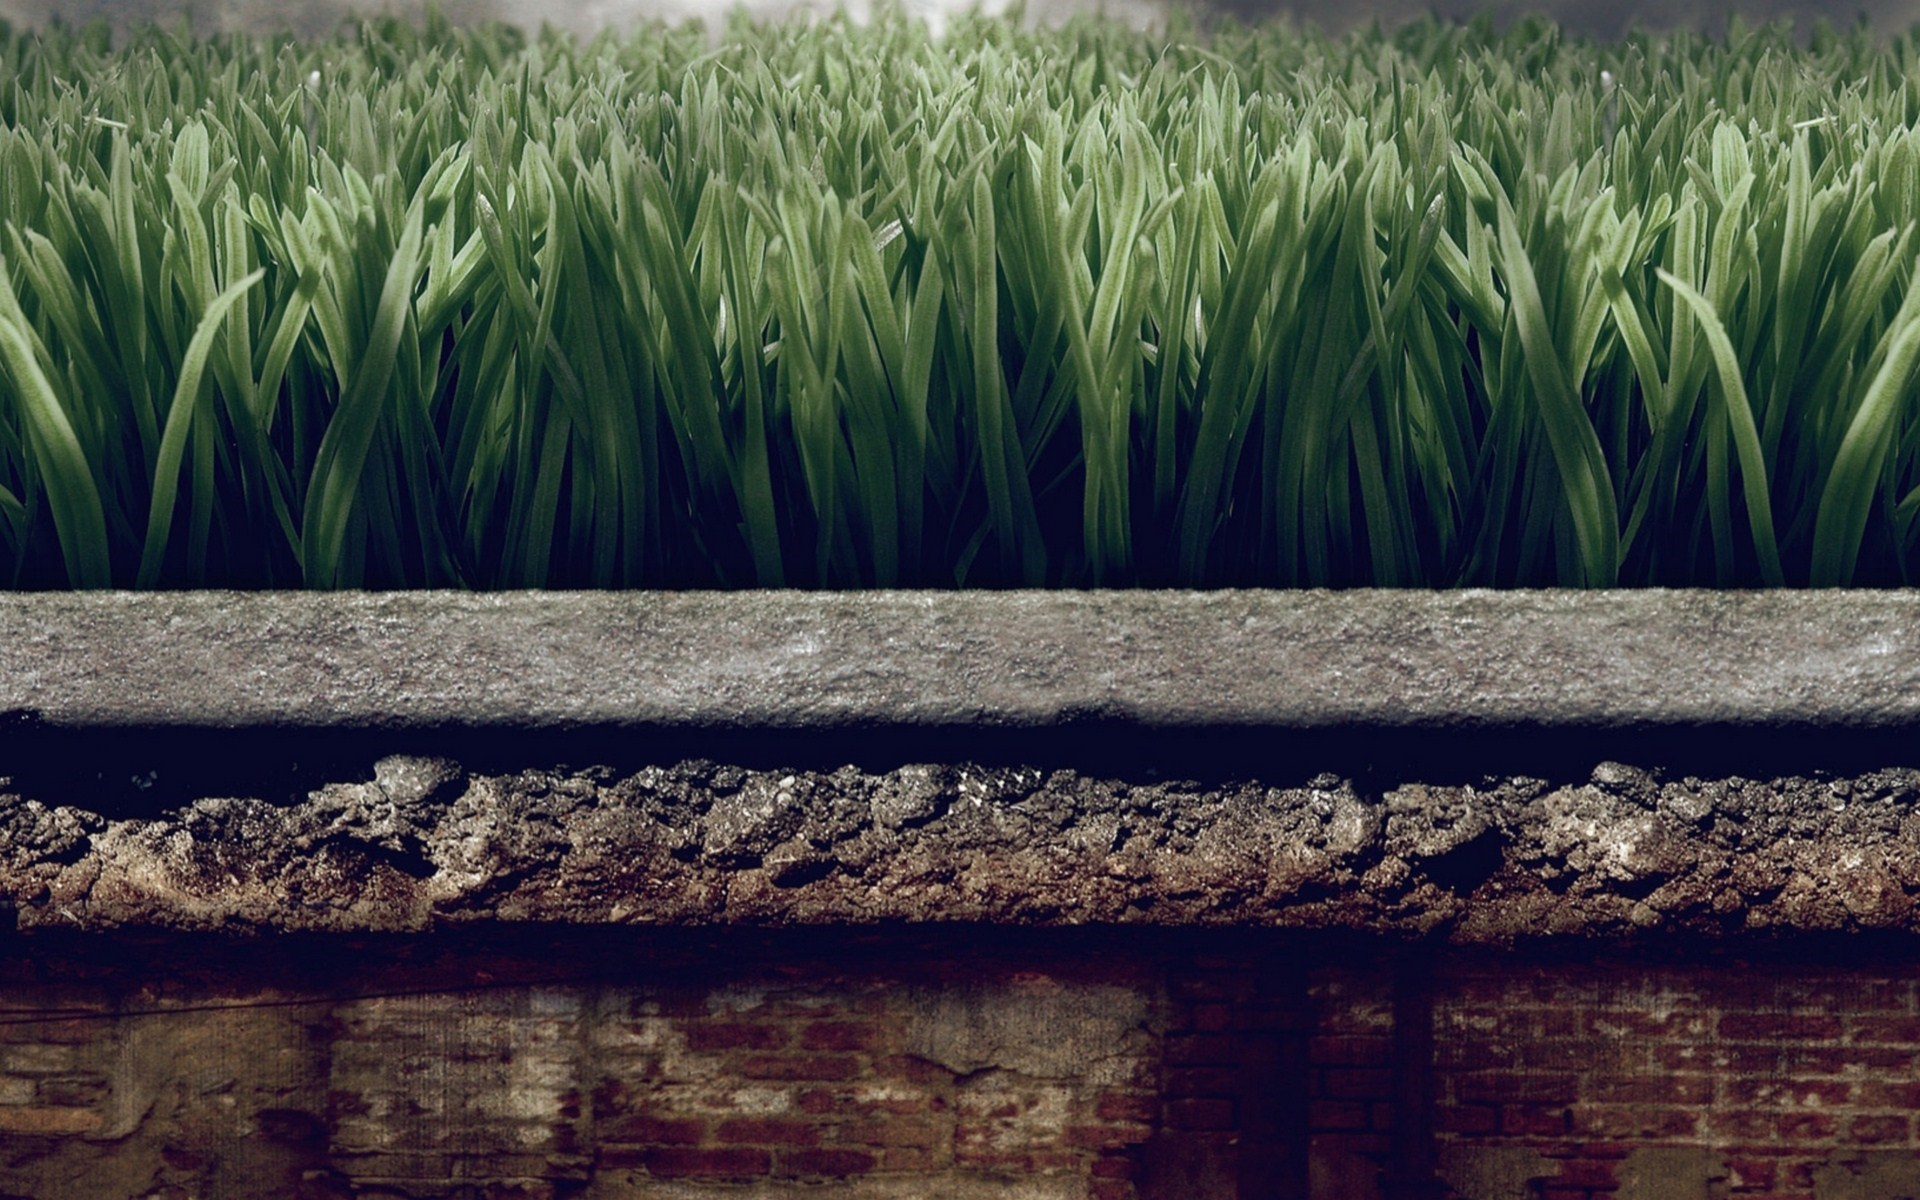 Wall Grass Turf Close-Up Photo